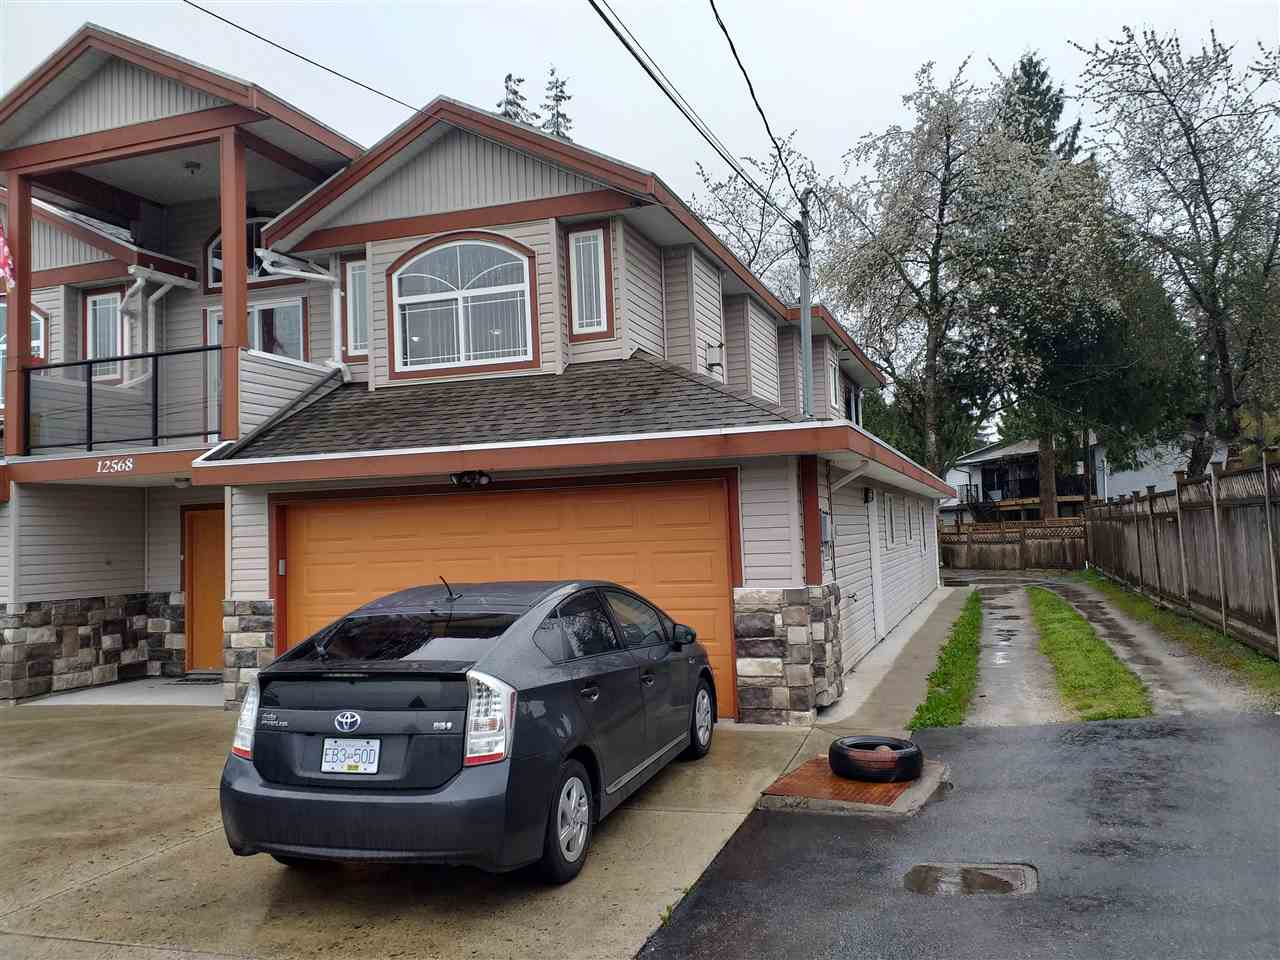 Centrally located house on over 8000 SQFT with RF zone. Close to Central City Mall and Guildford Mall and Wal-Mart. Very close to schools, walking distance to bus stop and shops.  House is fully renovated in 2018 with new appliances on top. A must see with mortgage helper of over $2700. Has a balcony in the front and also covered deck at the back. Covered 2 car garage and can fit lots of cars in the back yard. Like new.